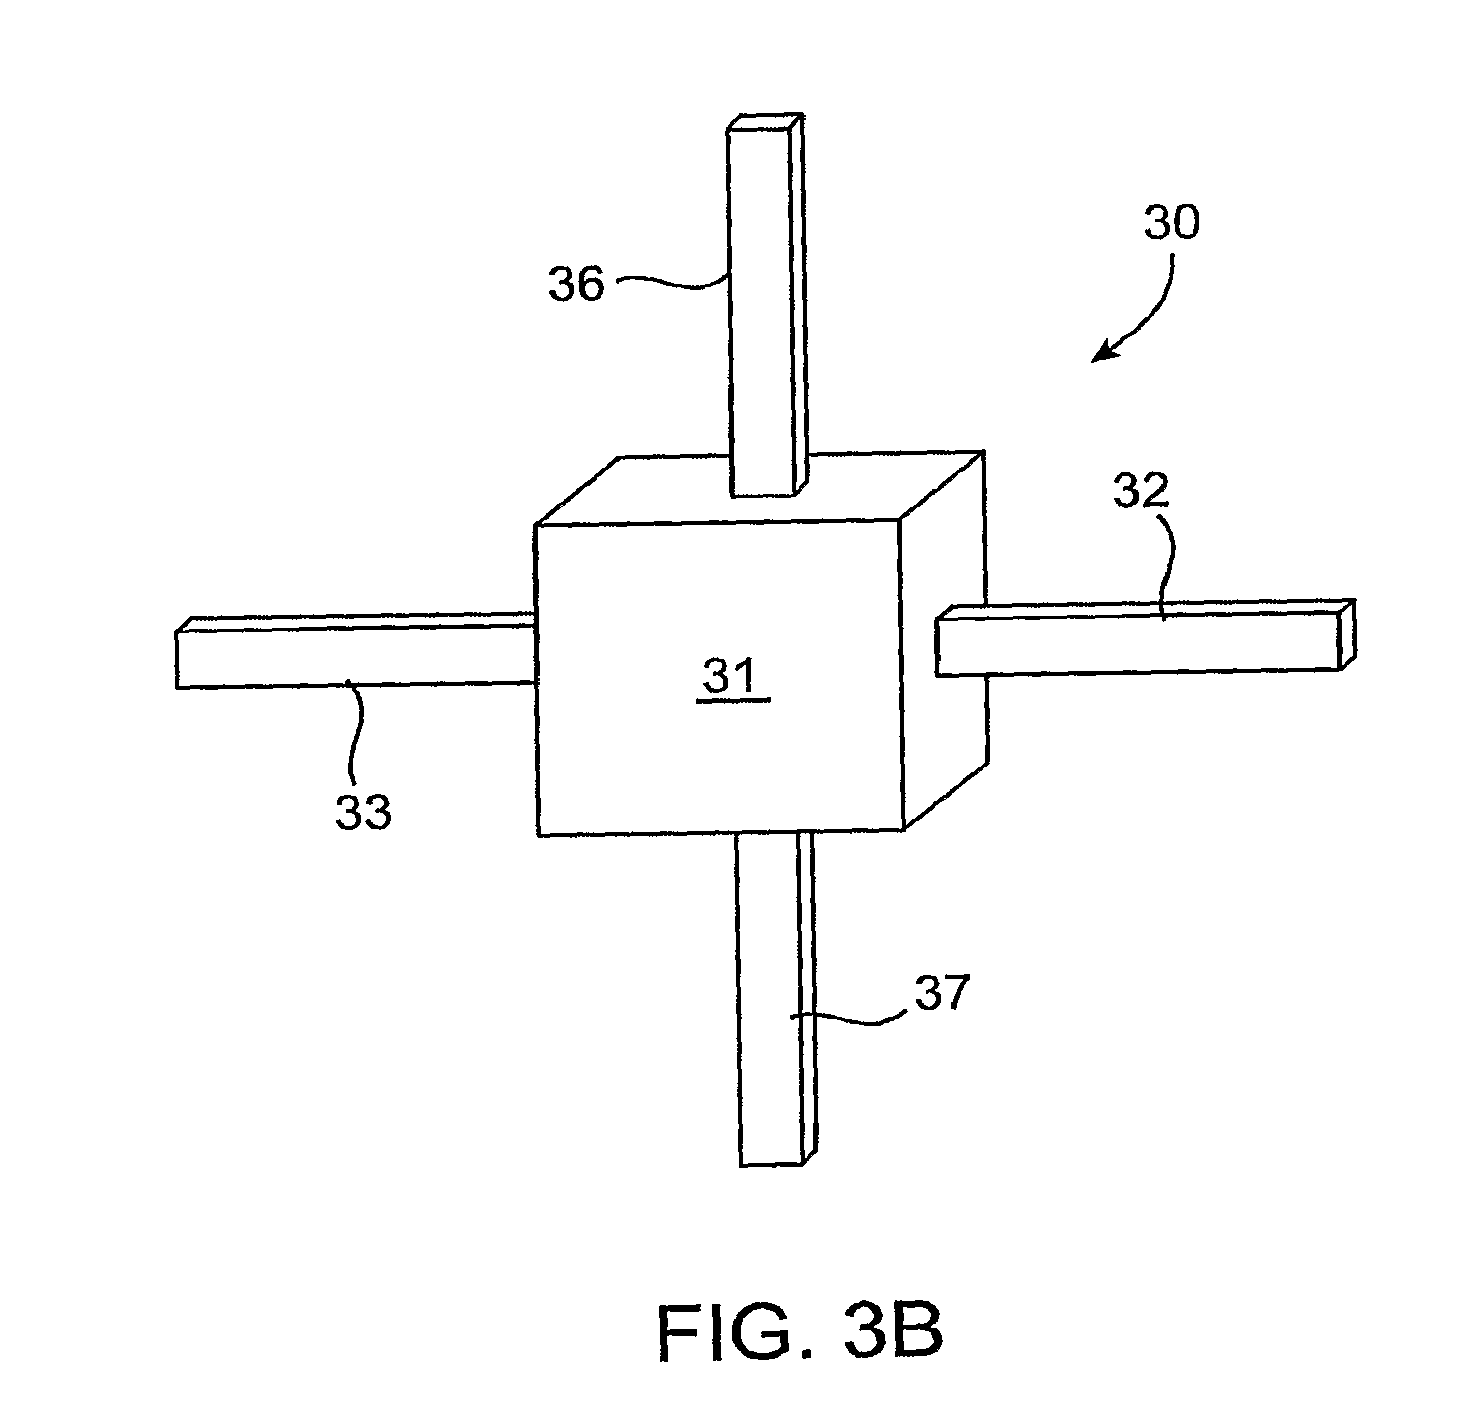 Patent Us 9119554 B2 Diagram Together With Dayton Ac Motor Wiring Besides 1967